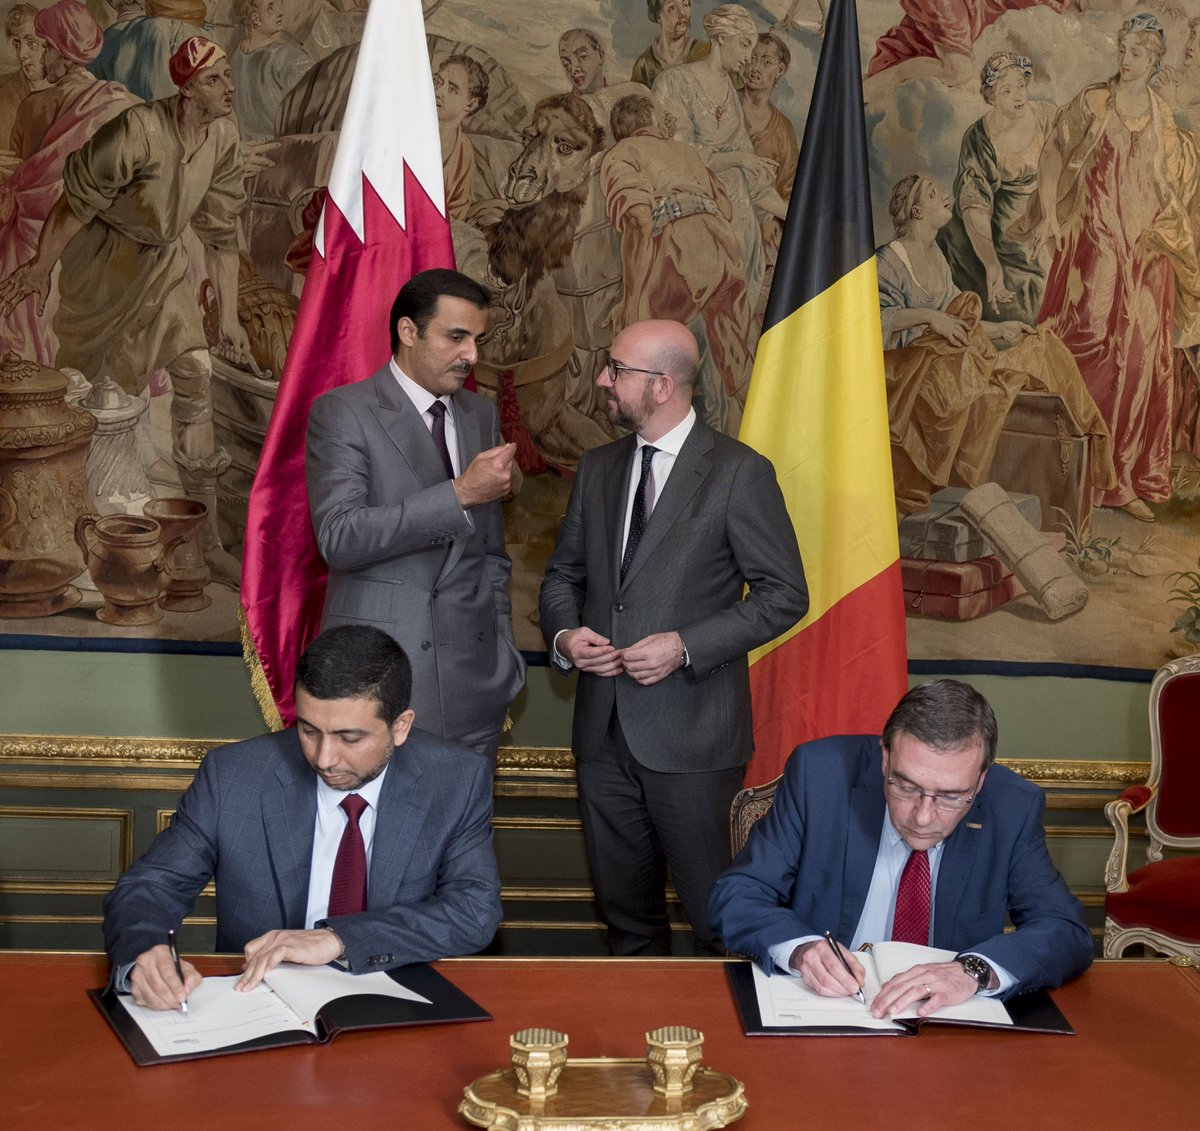 Hh The Emir Visit Belgium A Distinguished Political Relations And